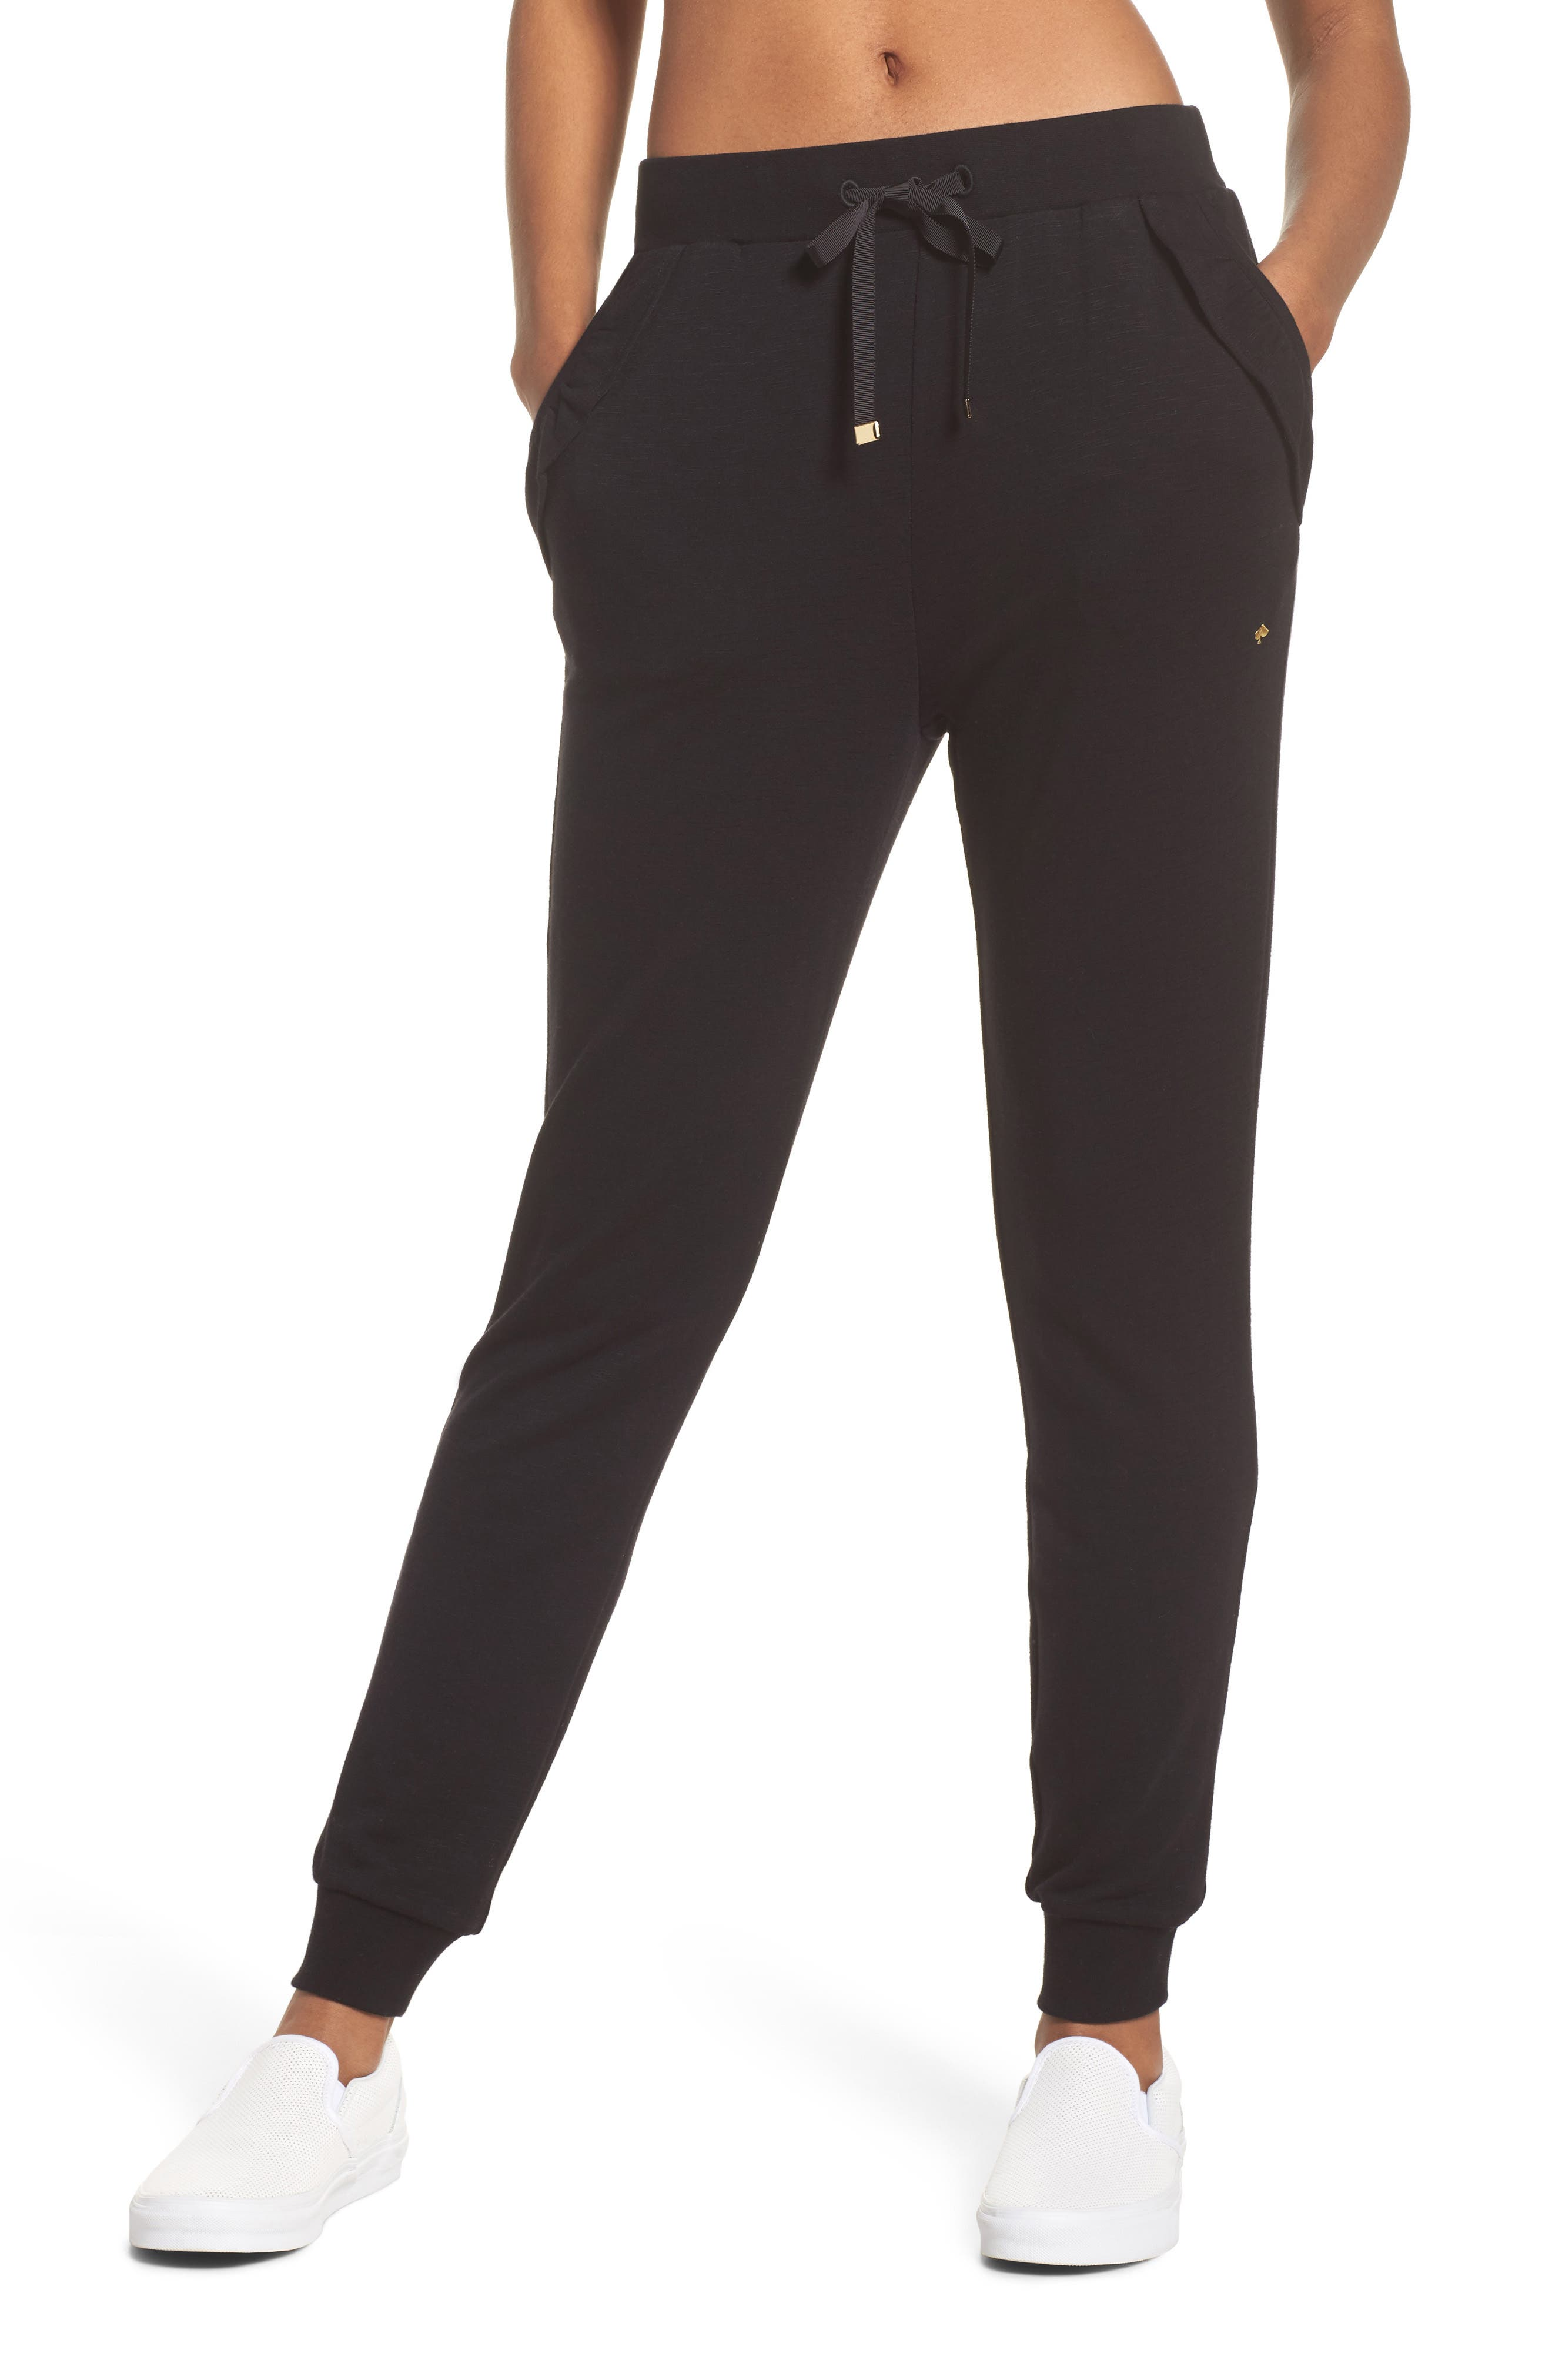 Alternate Image 1 Selected - kate spade new york ruffle sweatpants